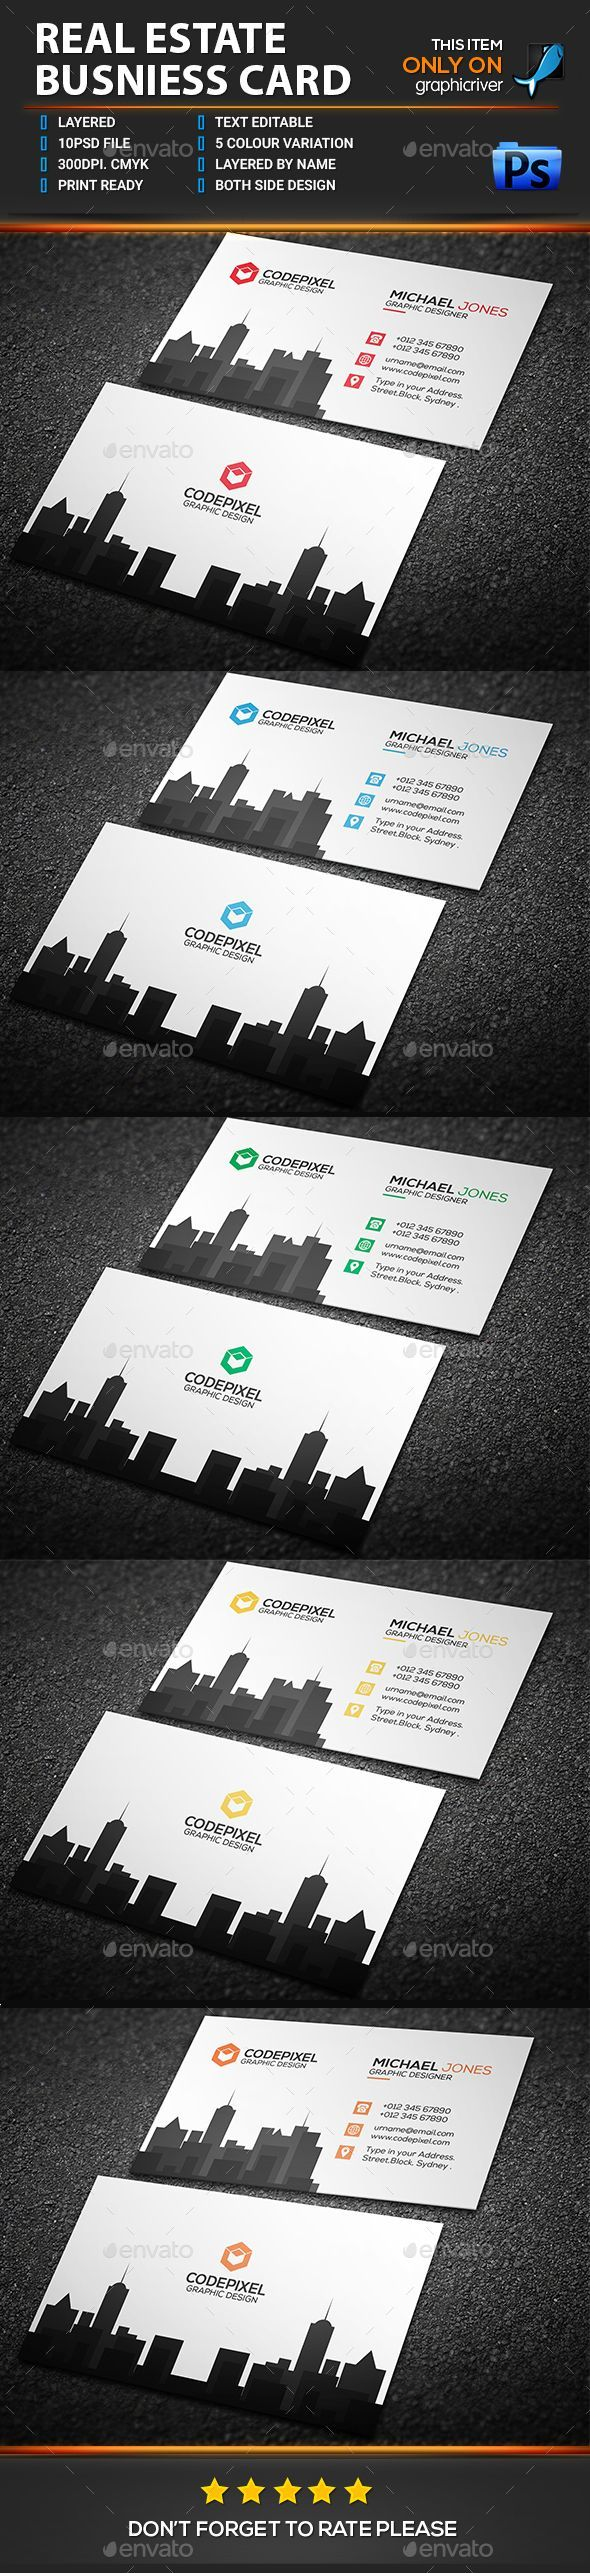 2868 Best Business Card Template Design Images On Pinterest